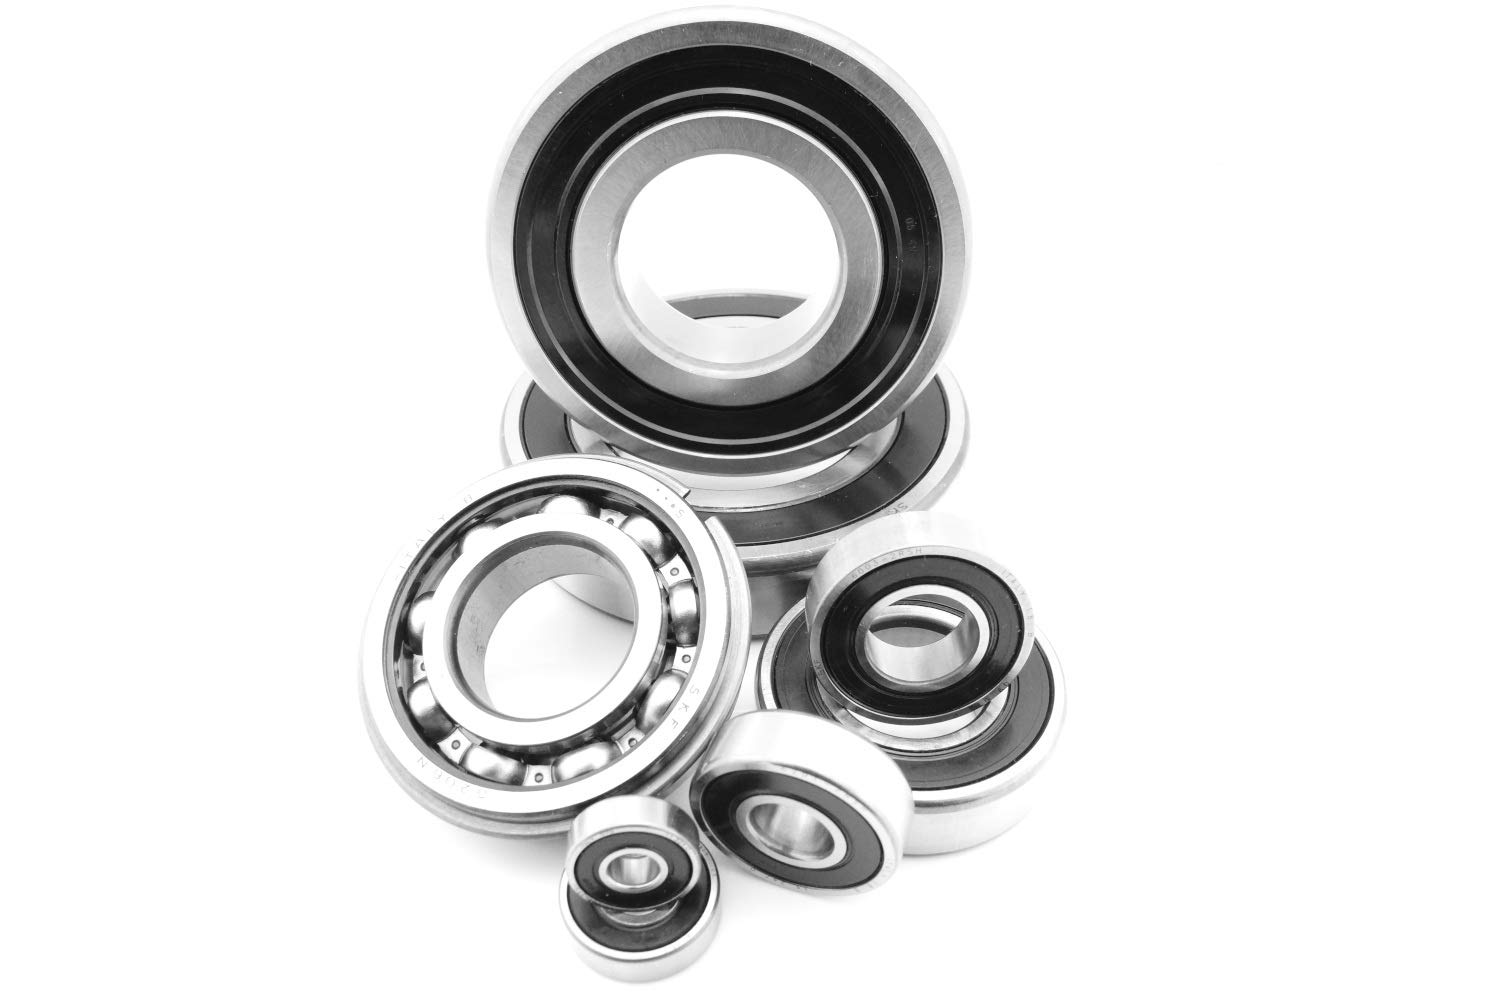 SKF 6205-2RSH C3 Single Row Ball Ship Large discharge sale Free New color Same Day with Bearing